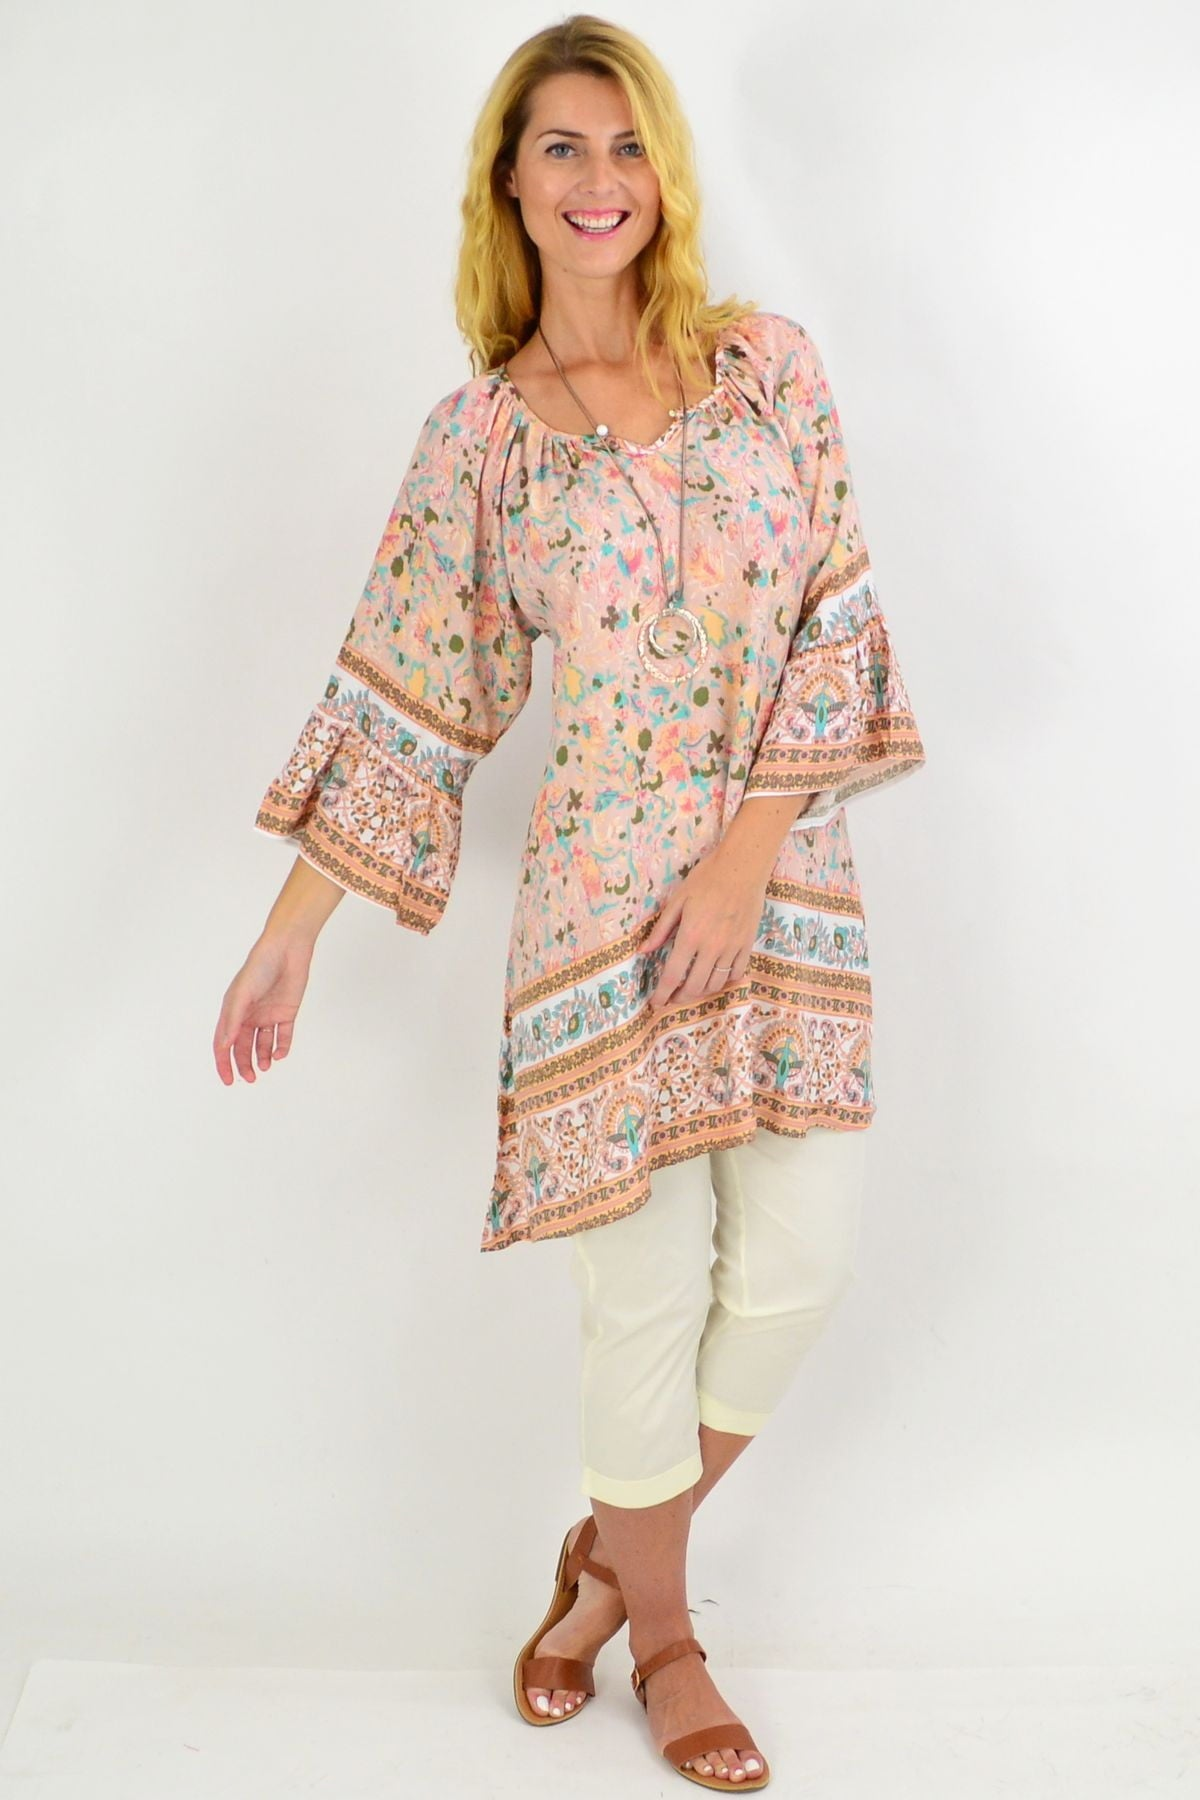 Pink Peacock Light & Pretty Tunic Top | I Love Tunics | Tunic Tops | Tunic | Tunic Dresses  | womens clothing online